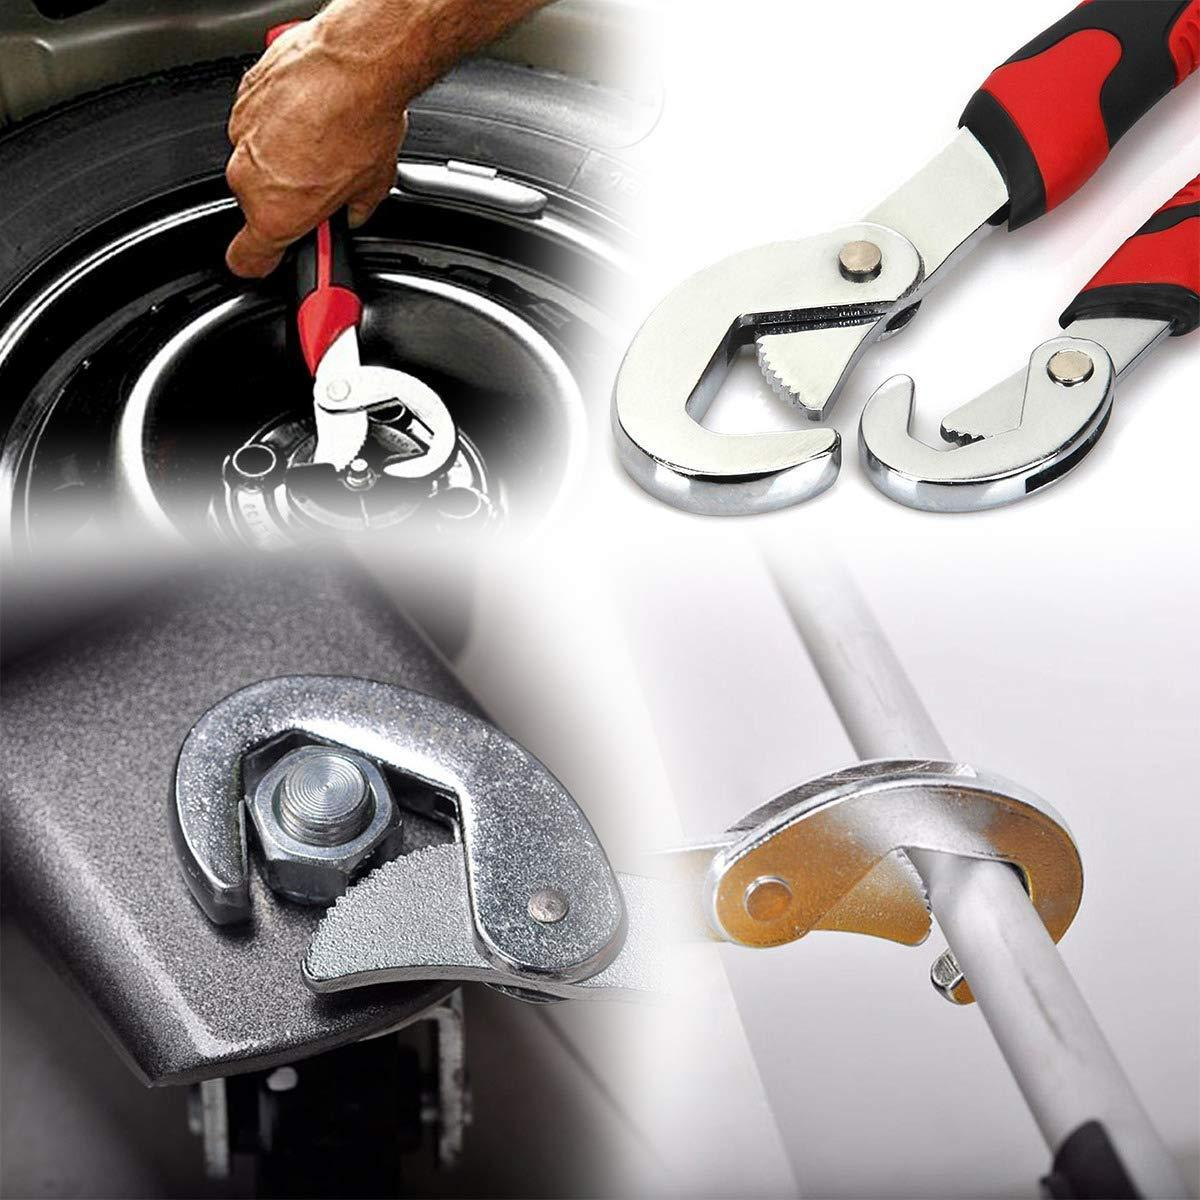 quick-snap-n-grip-multi-function-quick-snapn-universal-spanner-double-sided-speed-wrench